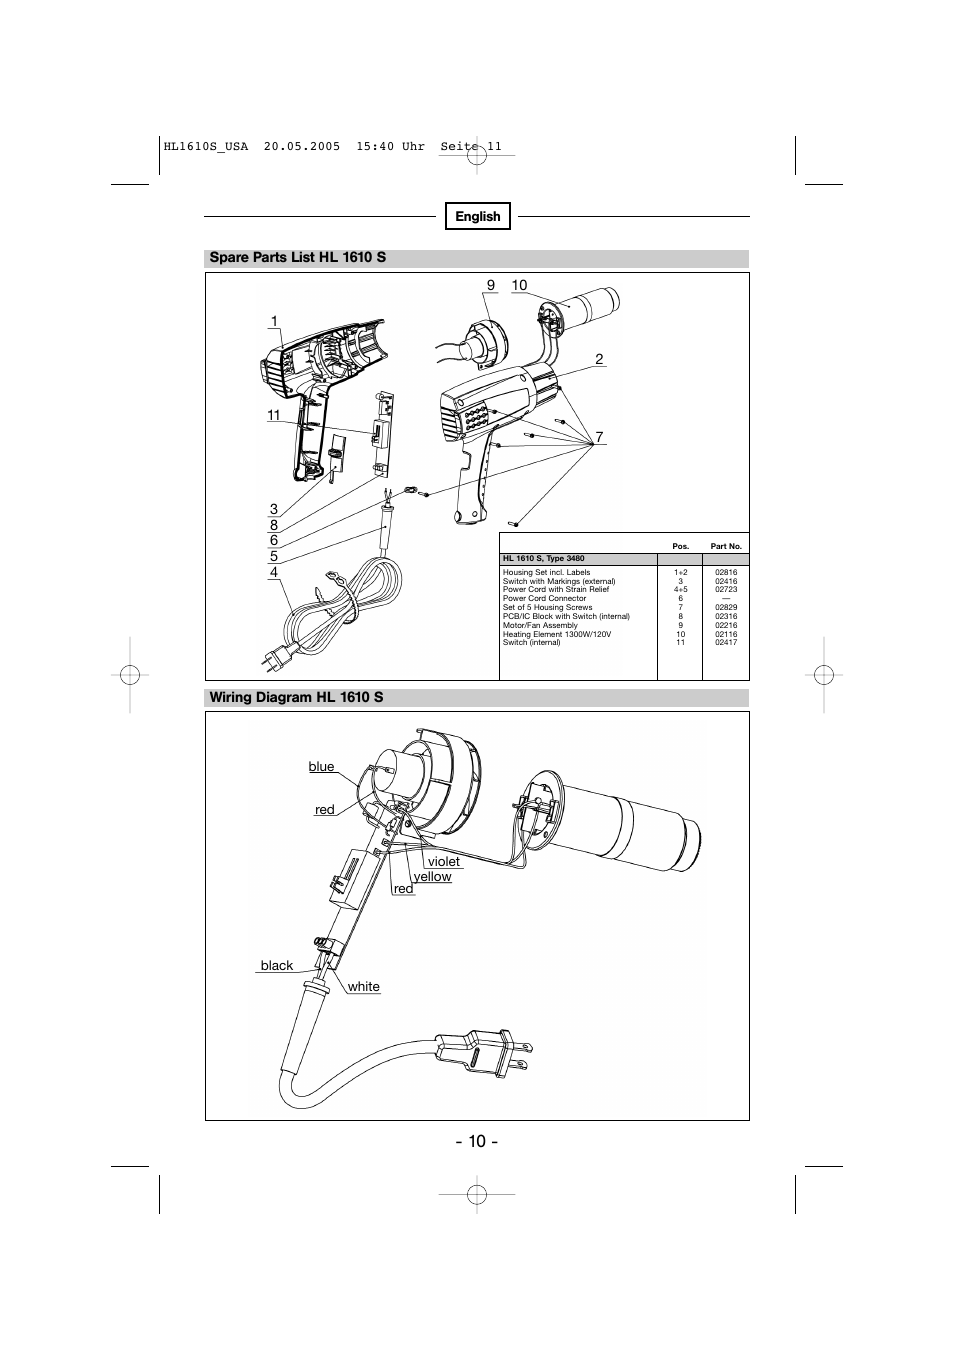 Steinel Hg 2510 Esd User Manual